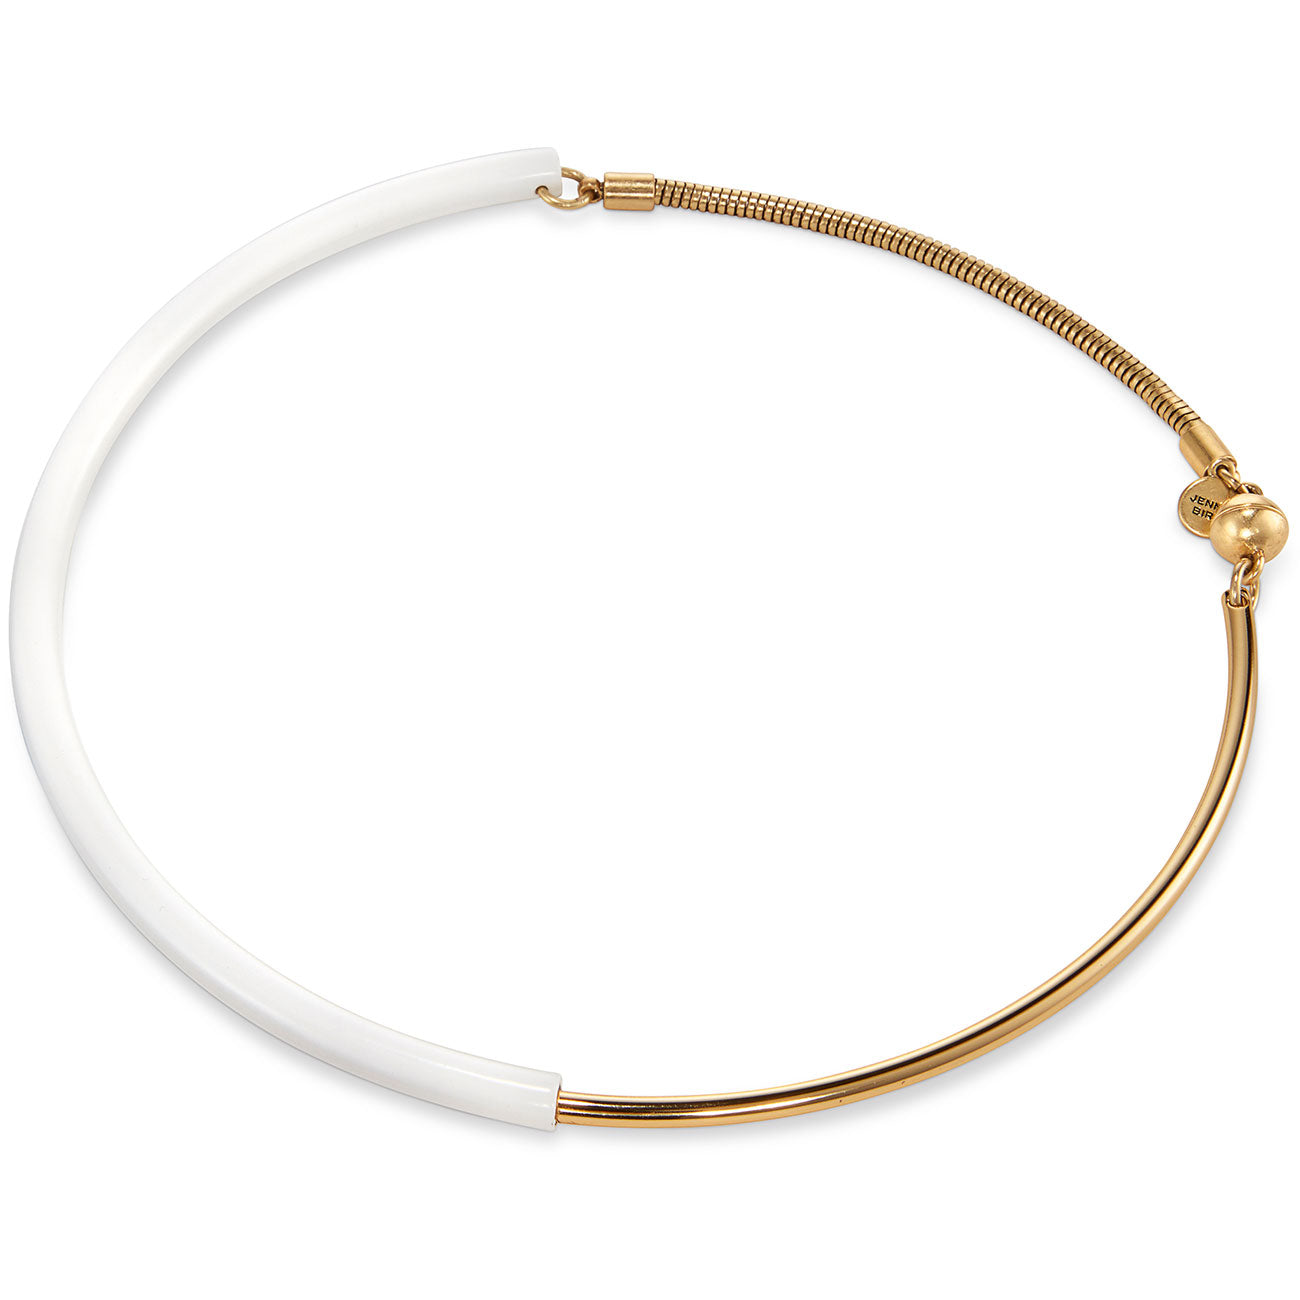 The Small Lola Collar Necklace by Jenny Bird in White